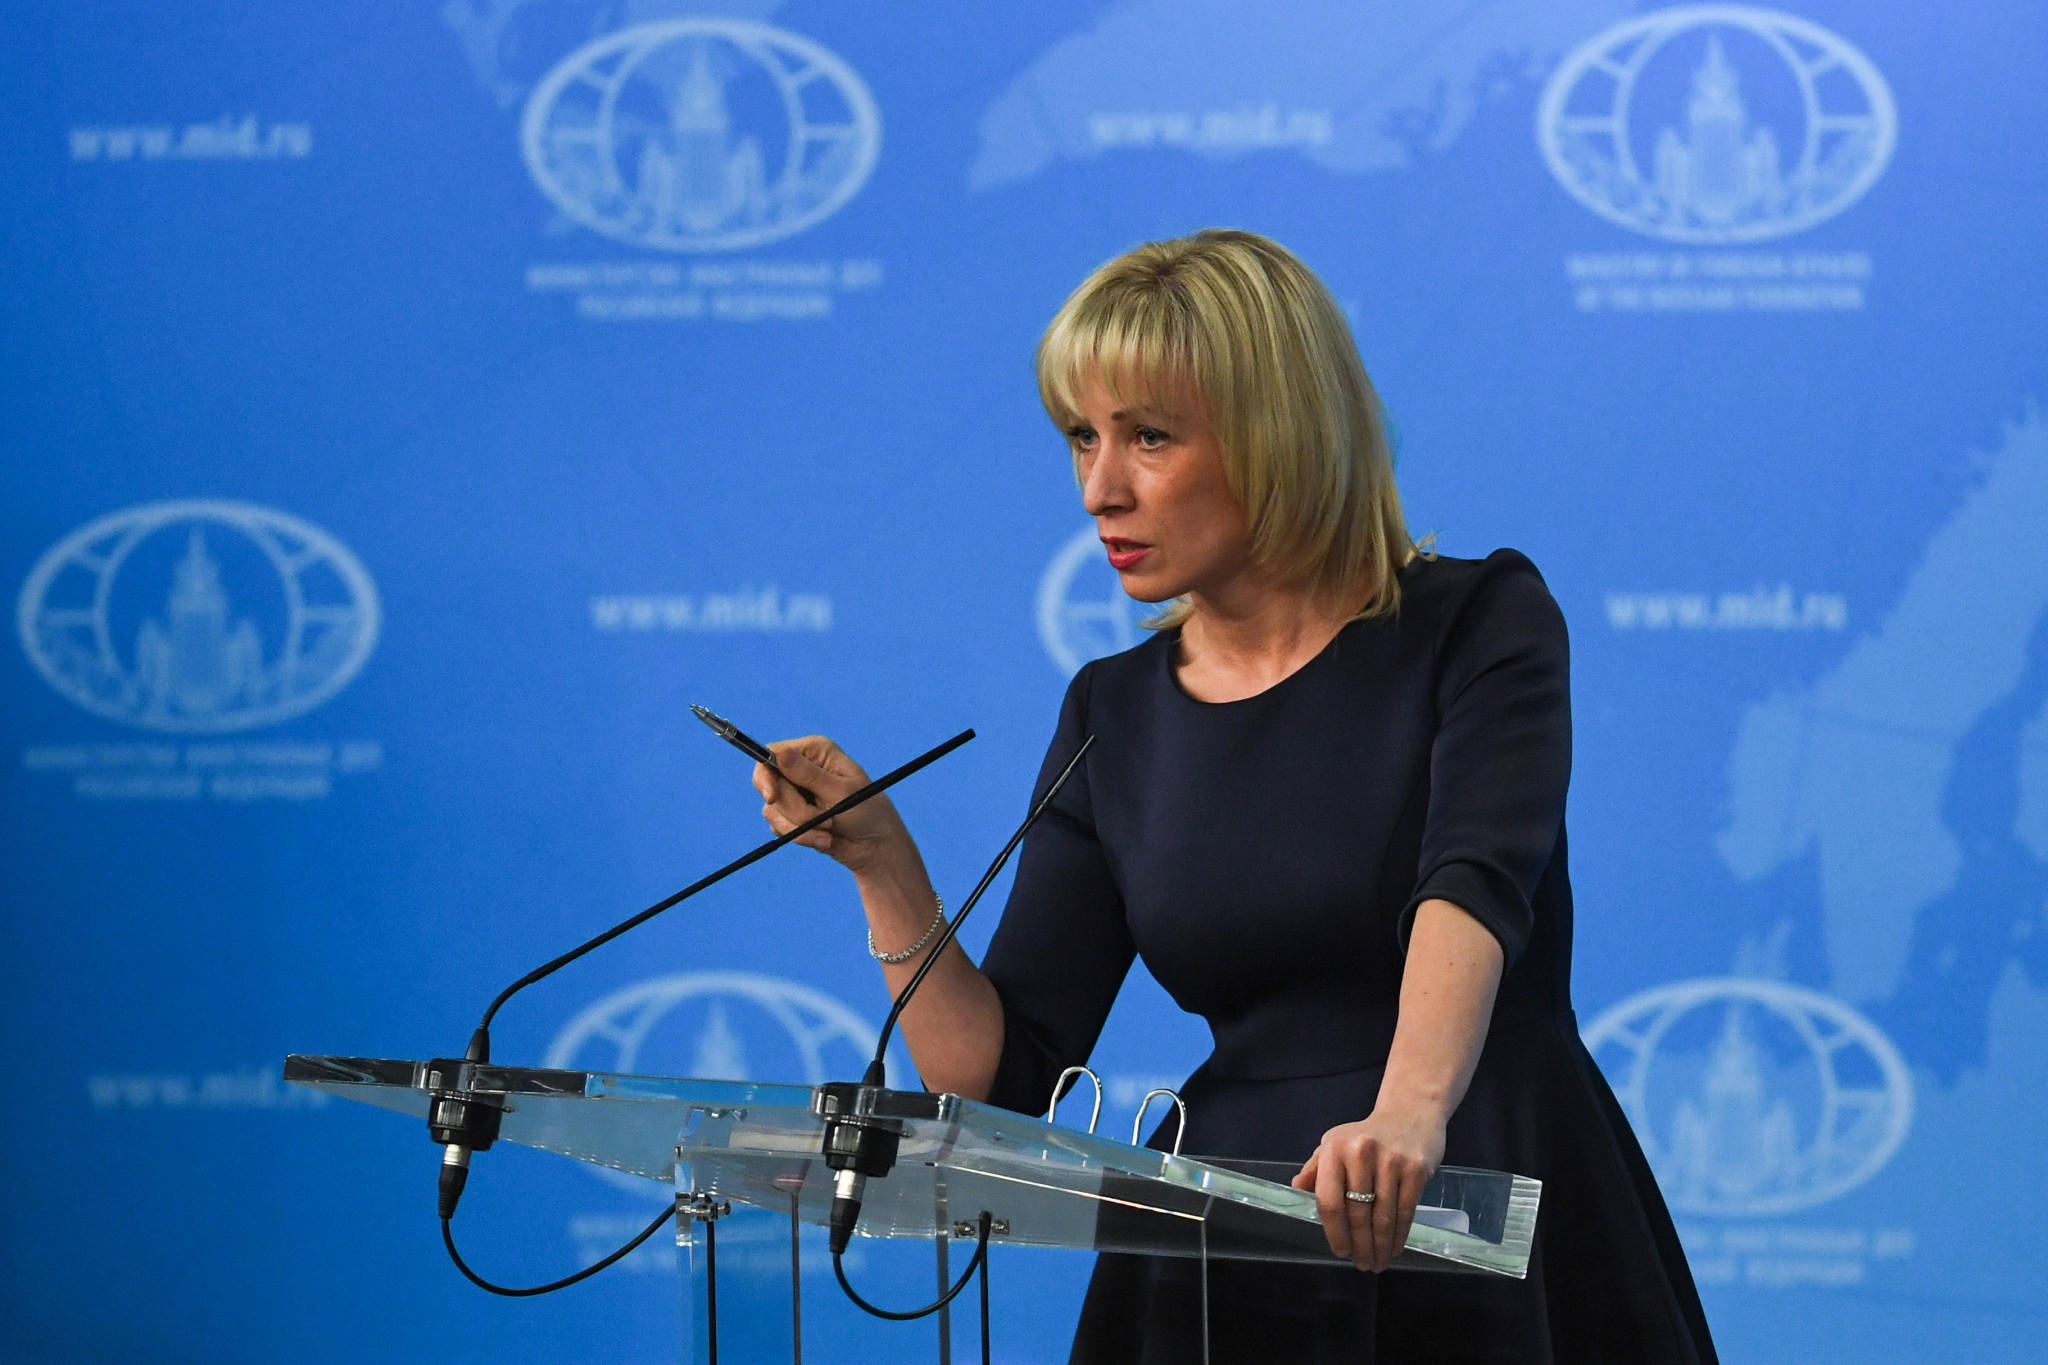 Russian Foreign Ministry spokeswoman Maria Zakharova has called the police's action